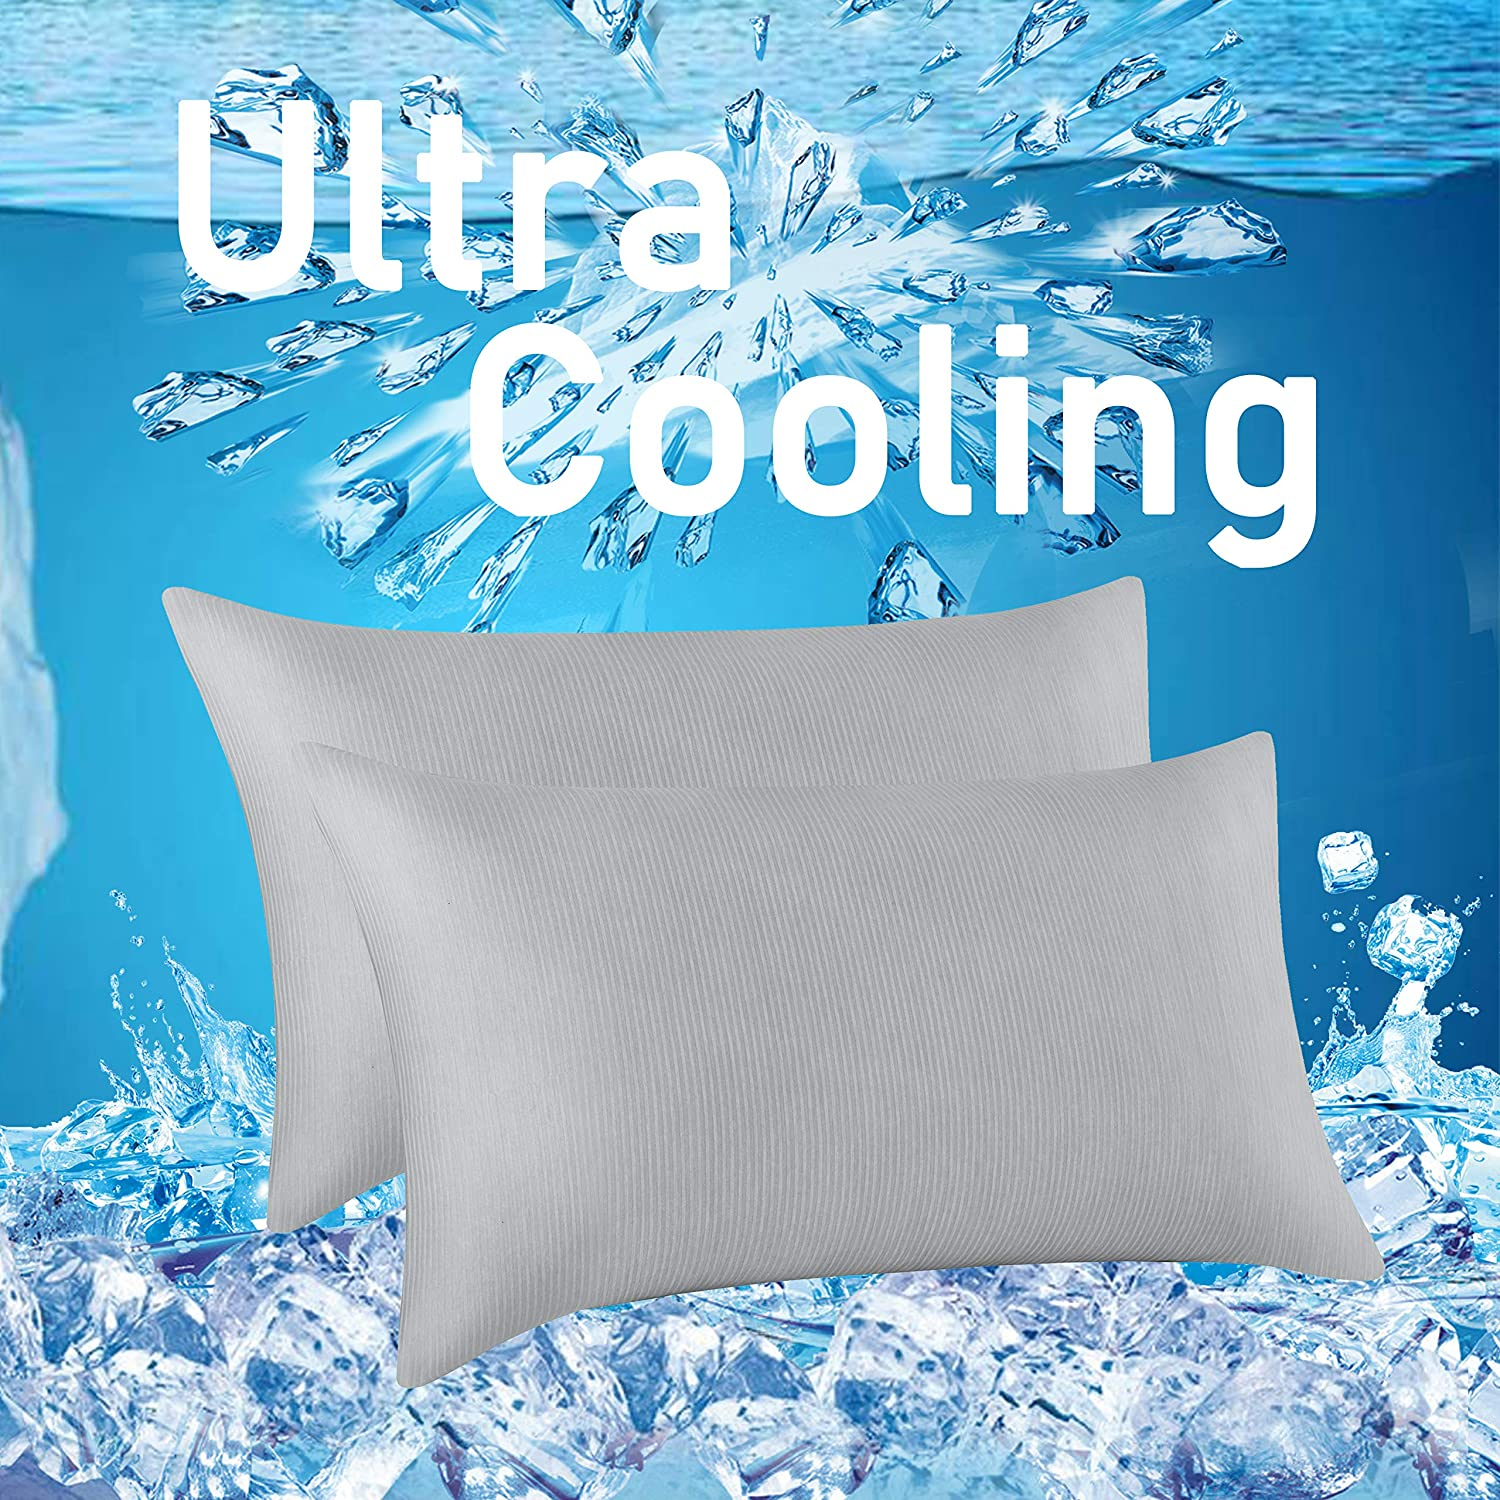 MR&HM Cooling Pillow Case Protector, 2 Pack Queen Pillowcases Cover to Prevent Night Sweat - Breathable Soft, Cooling Eco-Friendly with Envelope Closure (20x30, Grey)